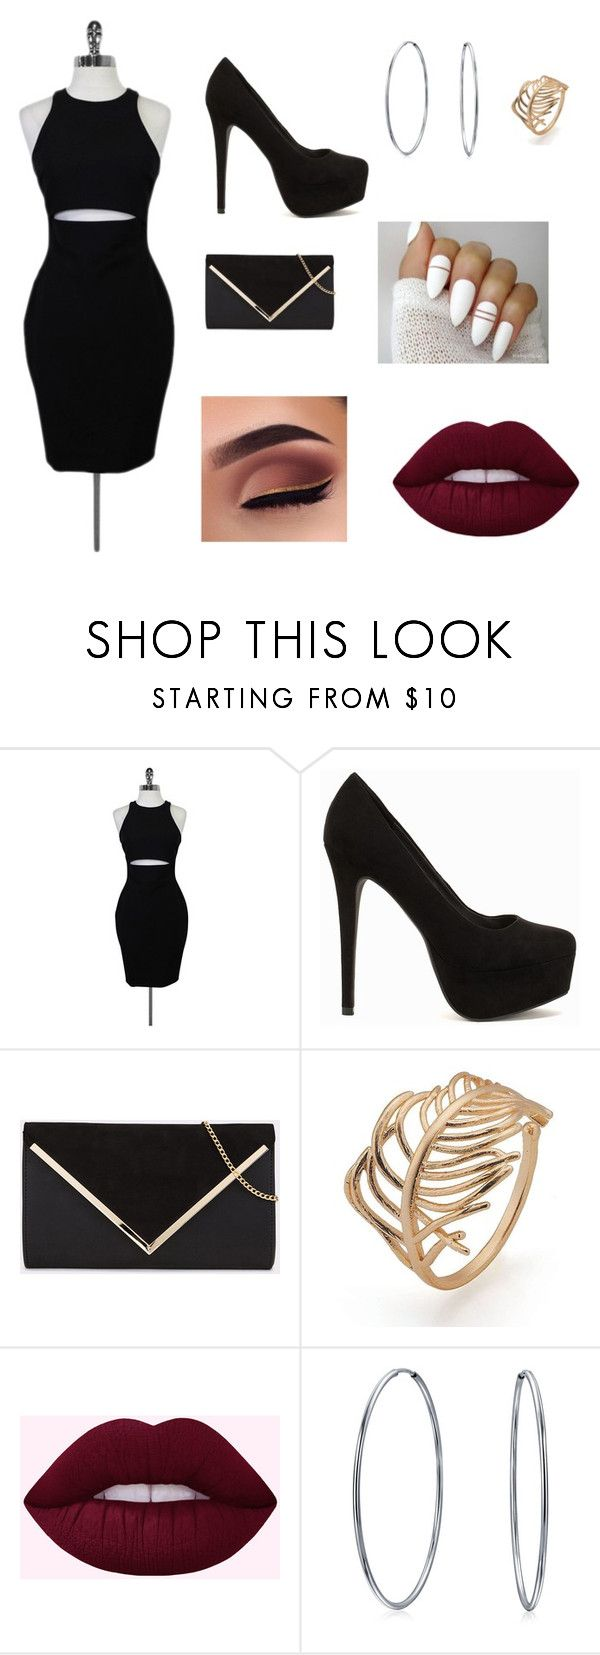 """""""Girls Night"""" by lilyannfrancis ❤ liked on Polyvore featuring Elizabeth and James, Nly Shoes and Bling Jewelry"""